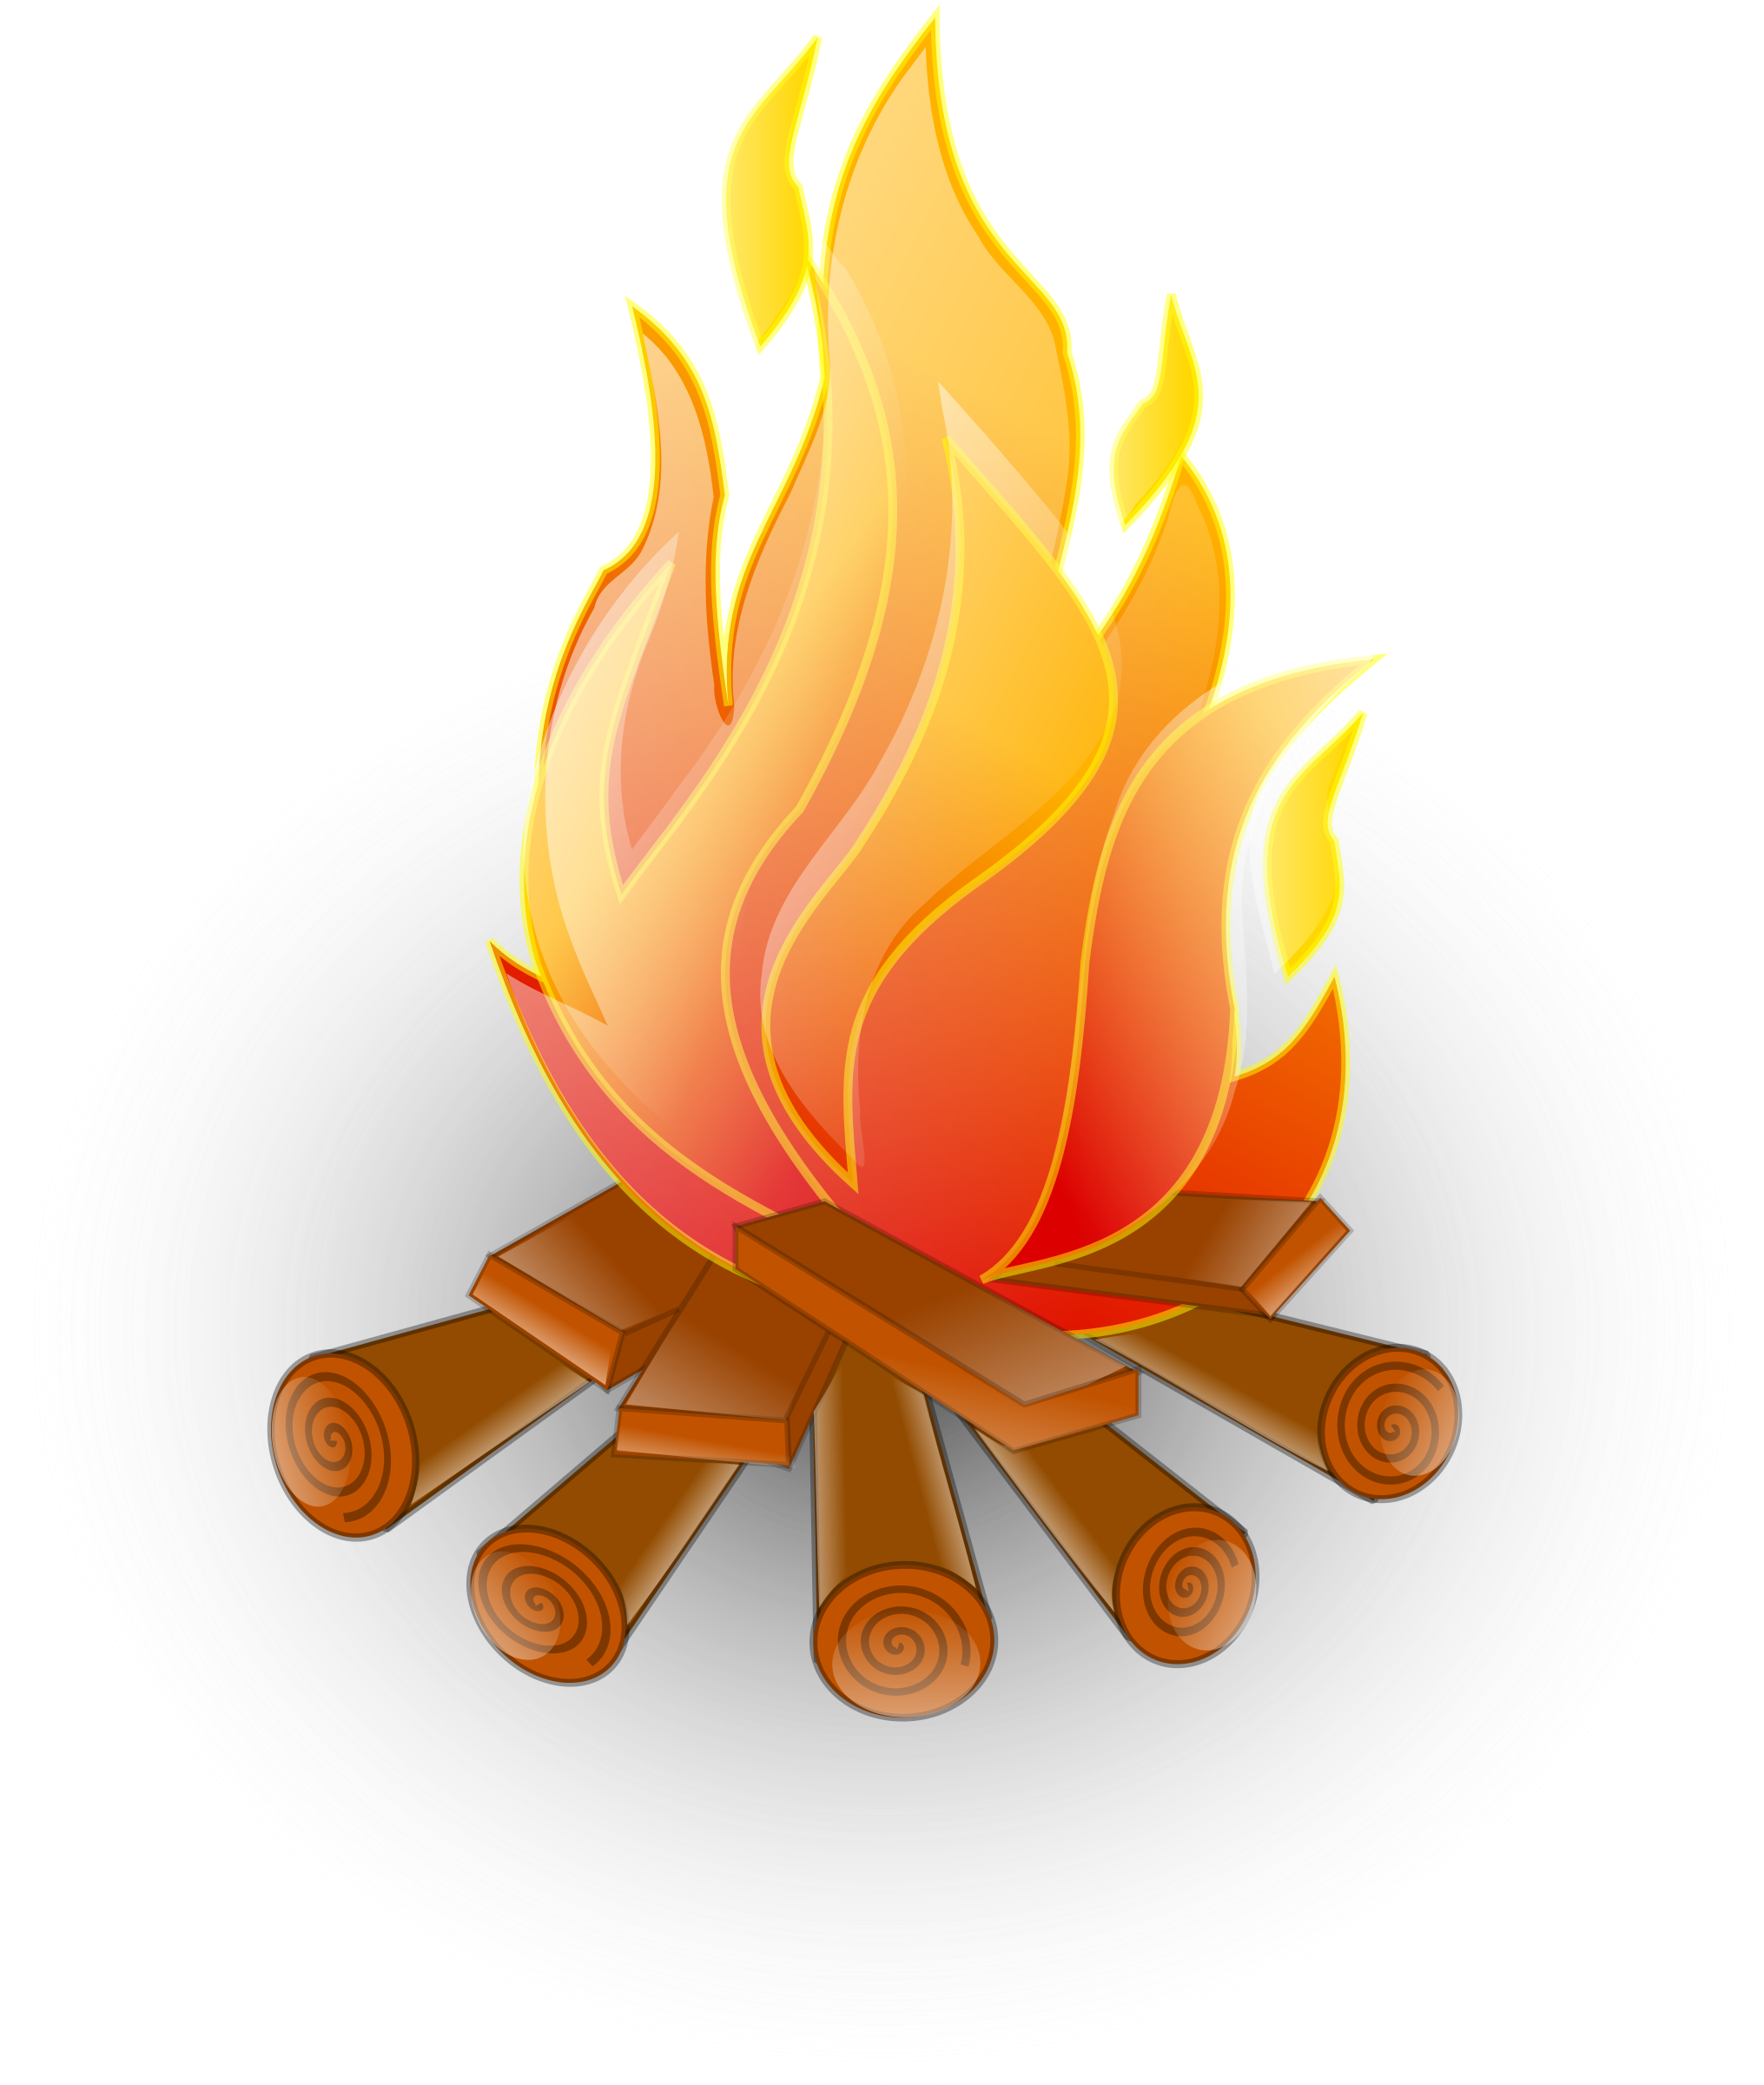 apoy clipart camp fire